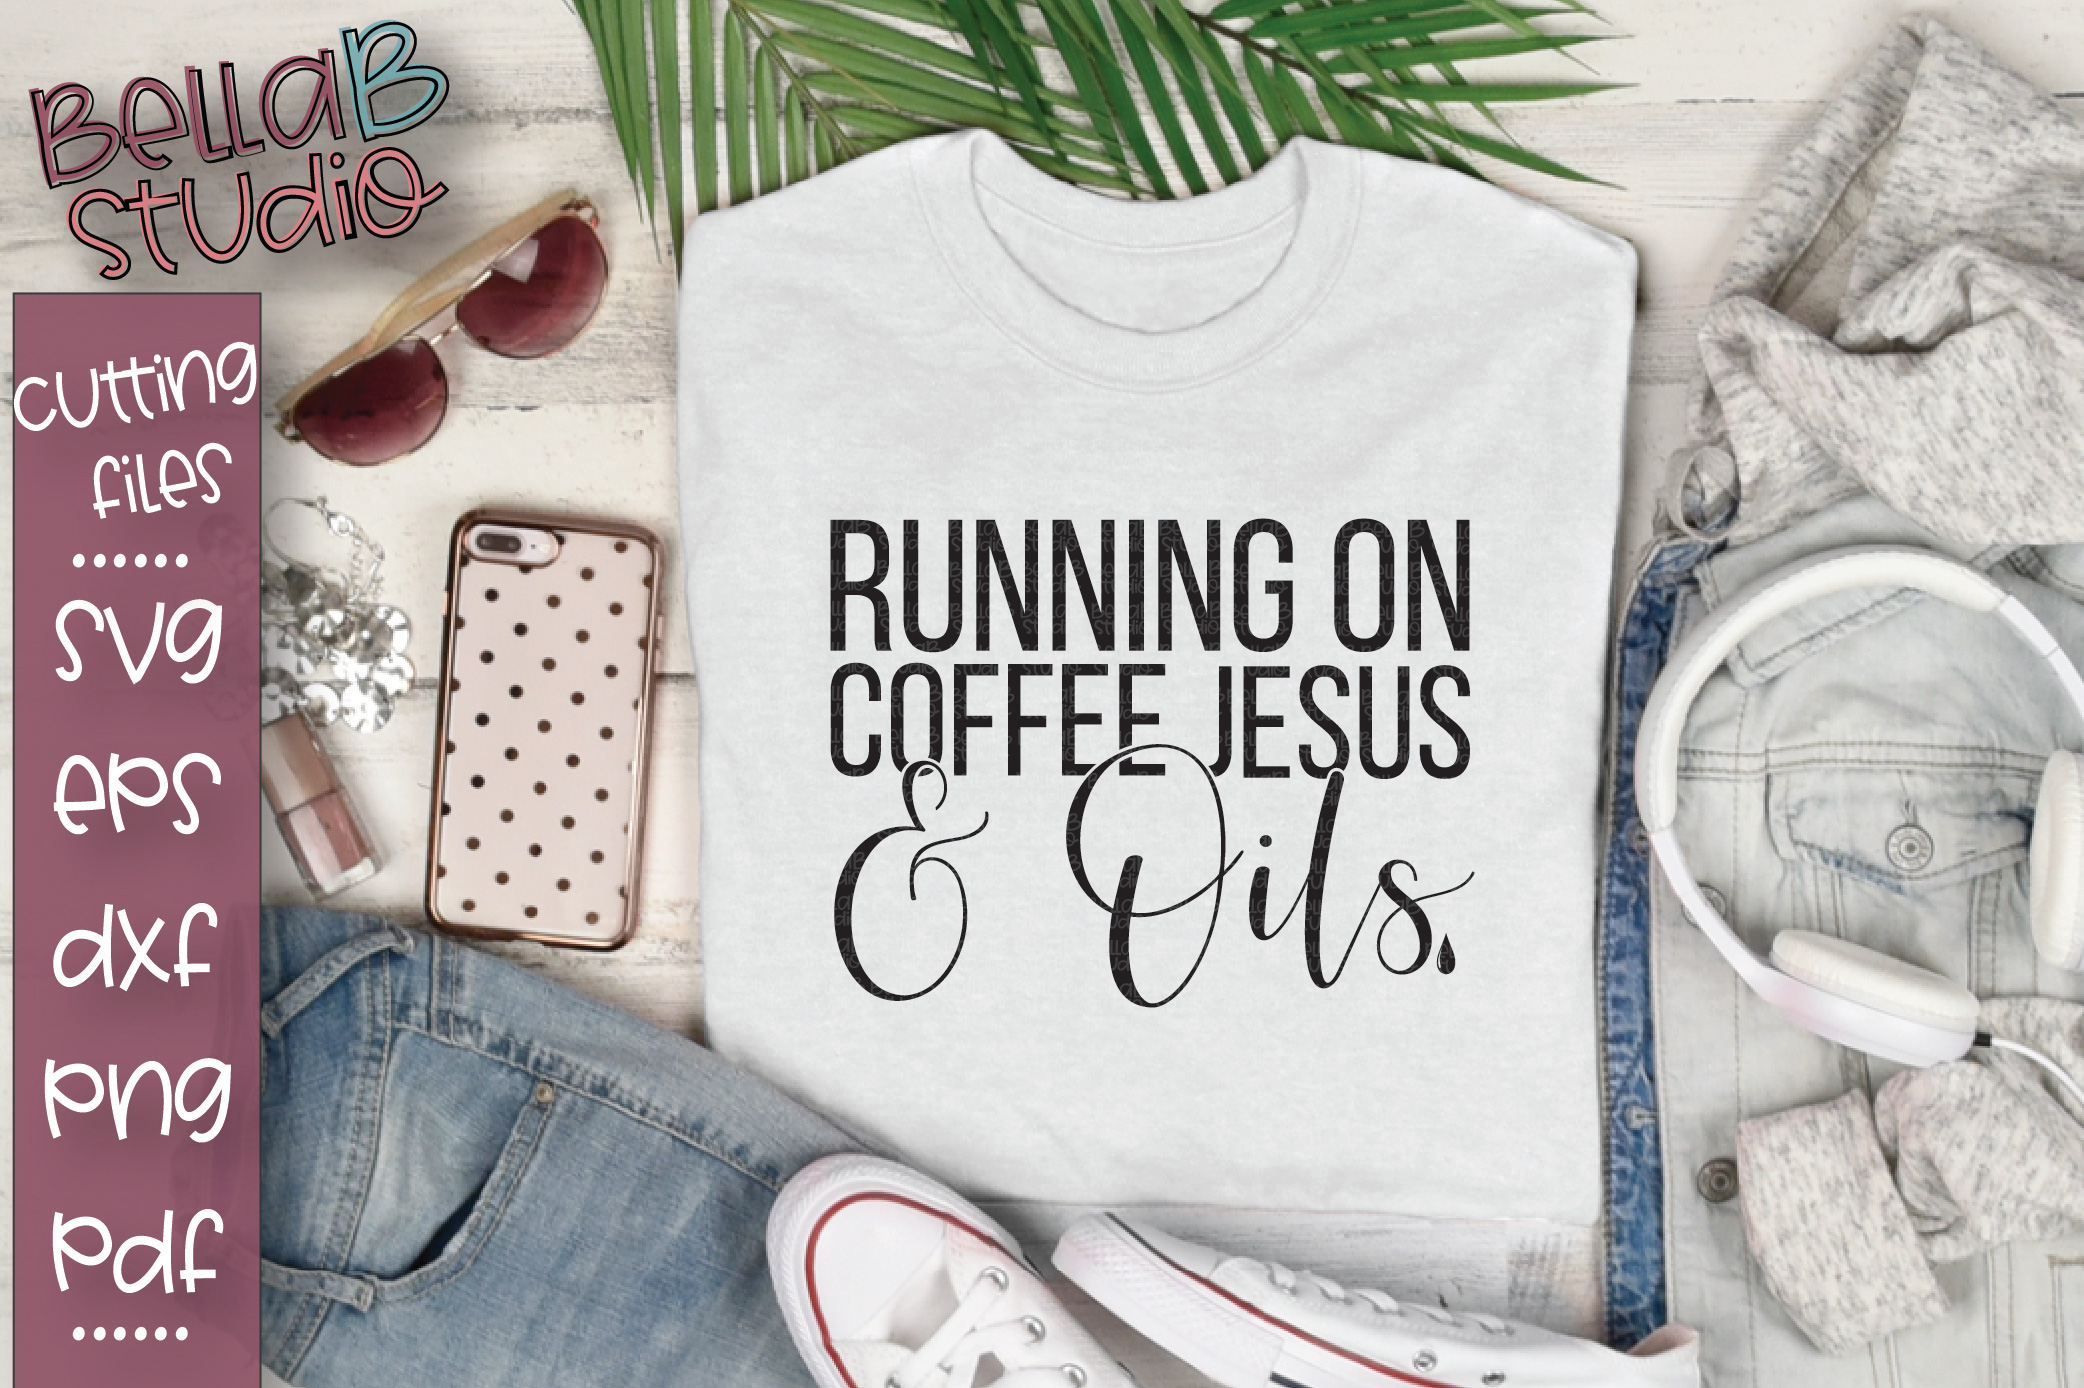 Essential Oils SVG, Running on Coffee Jesus And Oils SVG example image 1